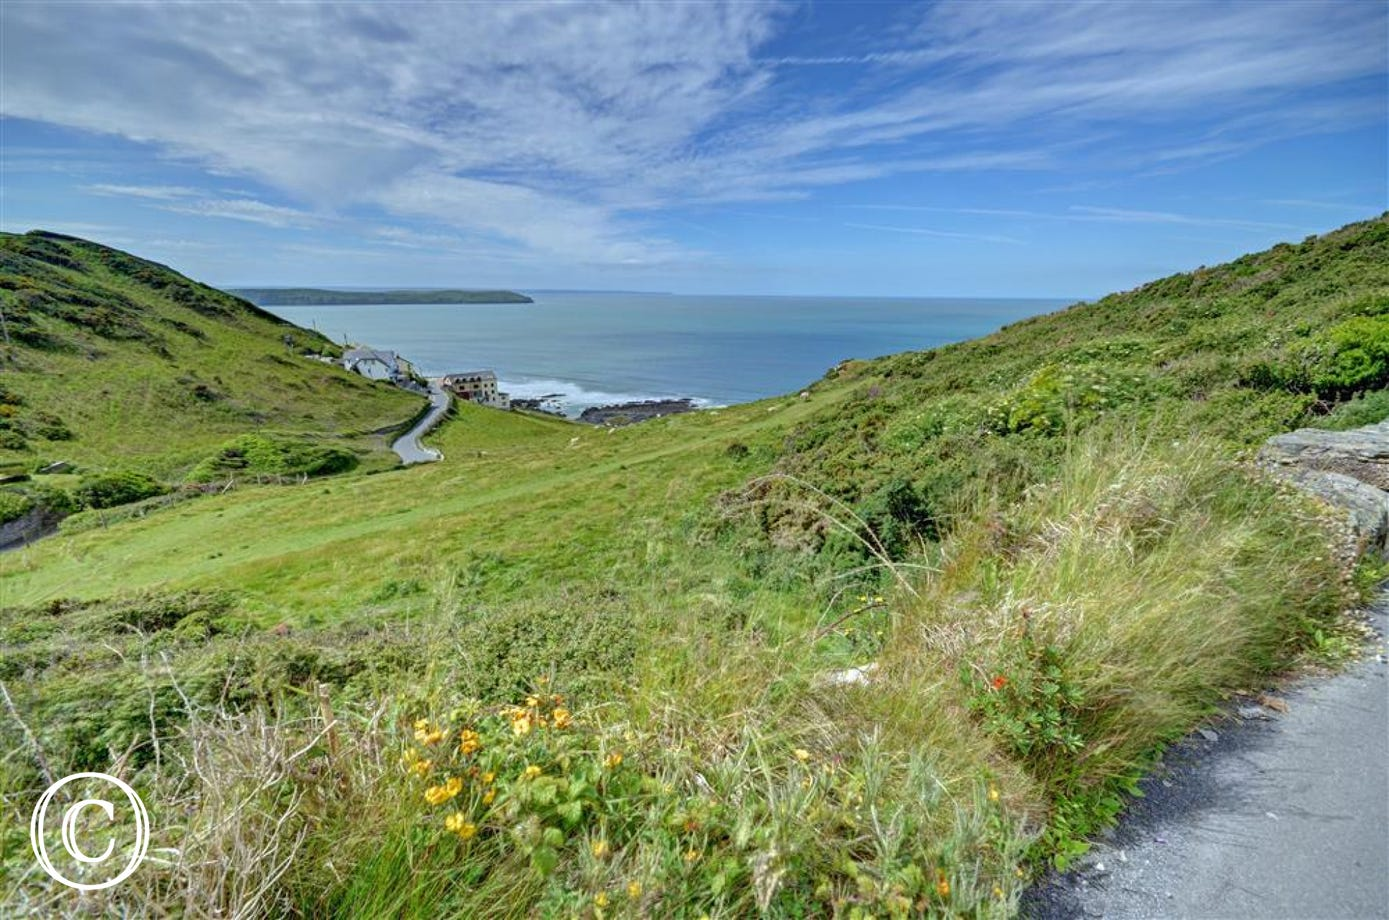 Uninterrupted views of the whole of Woolacombe Bay and out to Lundy Island